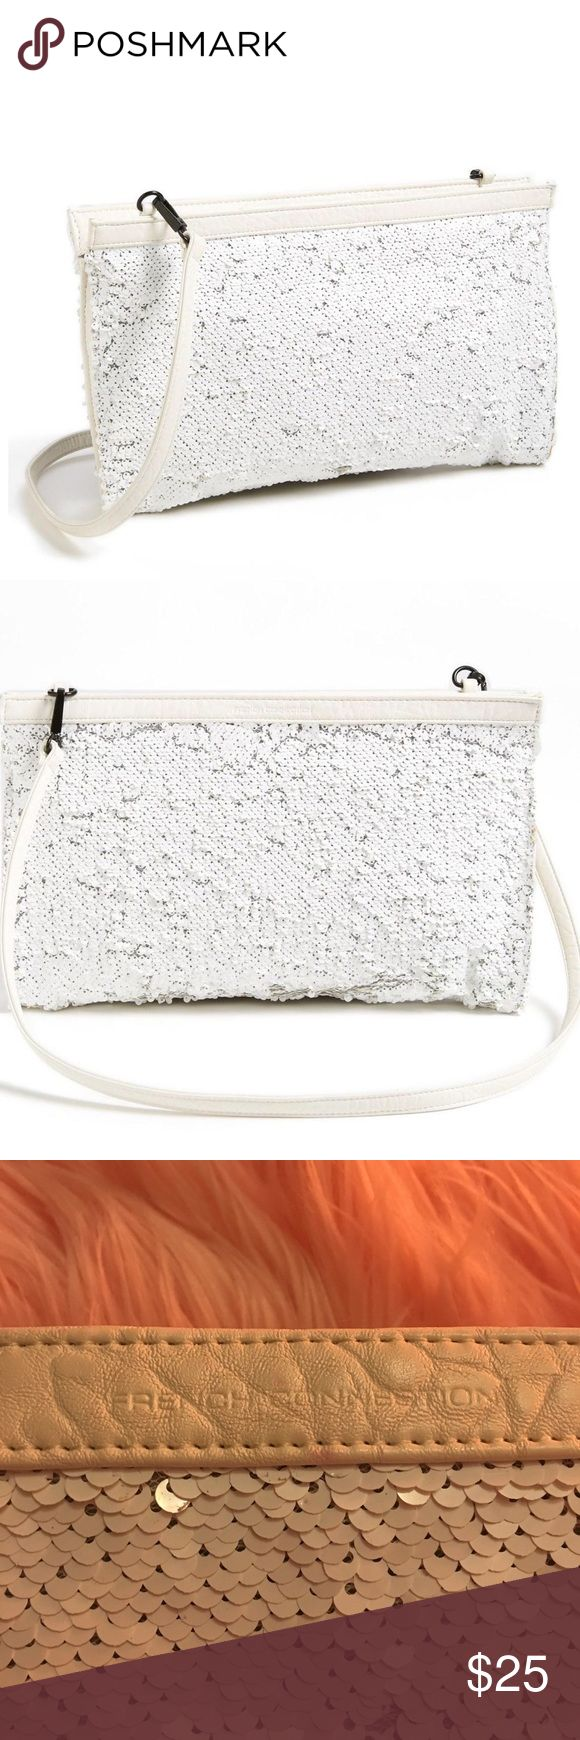 French Connection white sequin convertible clutch French Connection white sequin purse- can be worn as a crossbody or carried as a clutch. Perfect for summer-drinks by the pool, outdoor concerts, dinner at the beach! Worn approximately once or twice. Great condition but may be missing a few sequins. The sequins don't lie flat which adds a pretty, shimmery texture. French Connection Bags